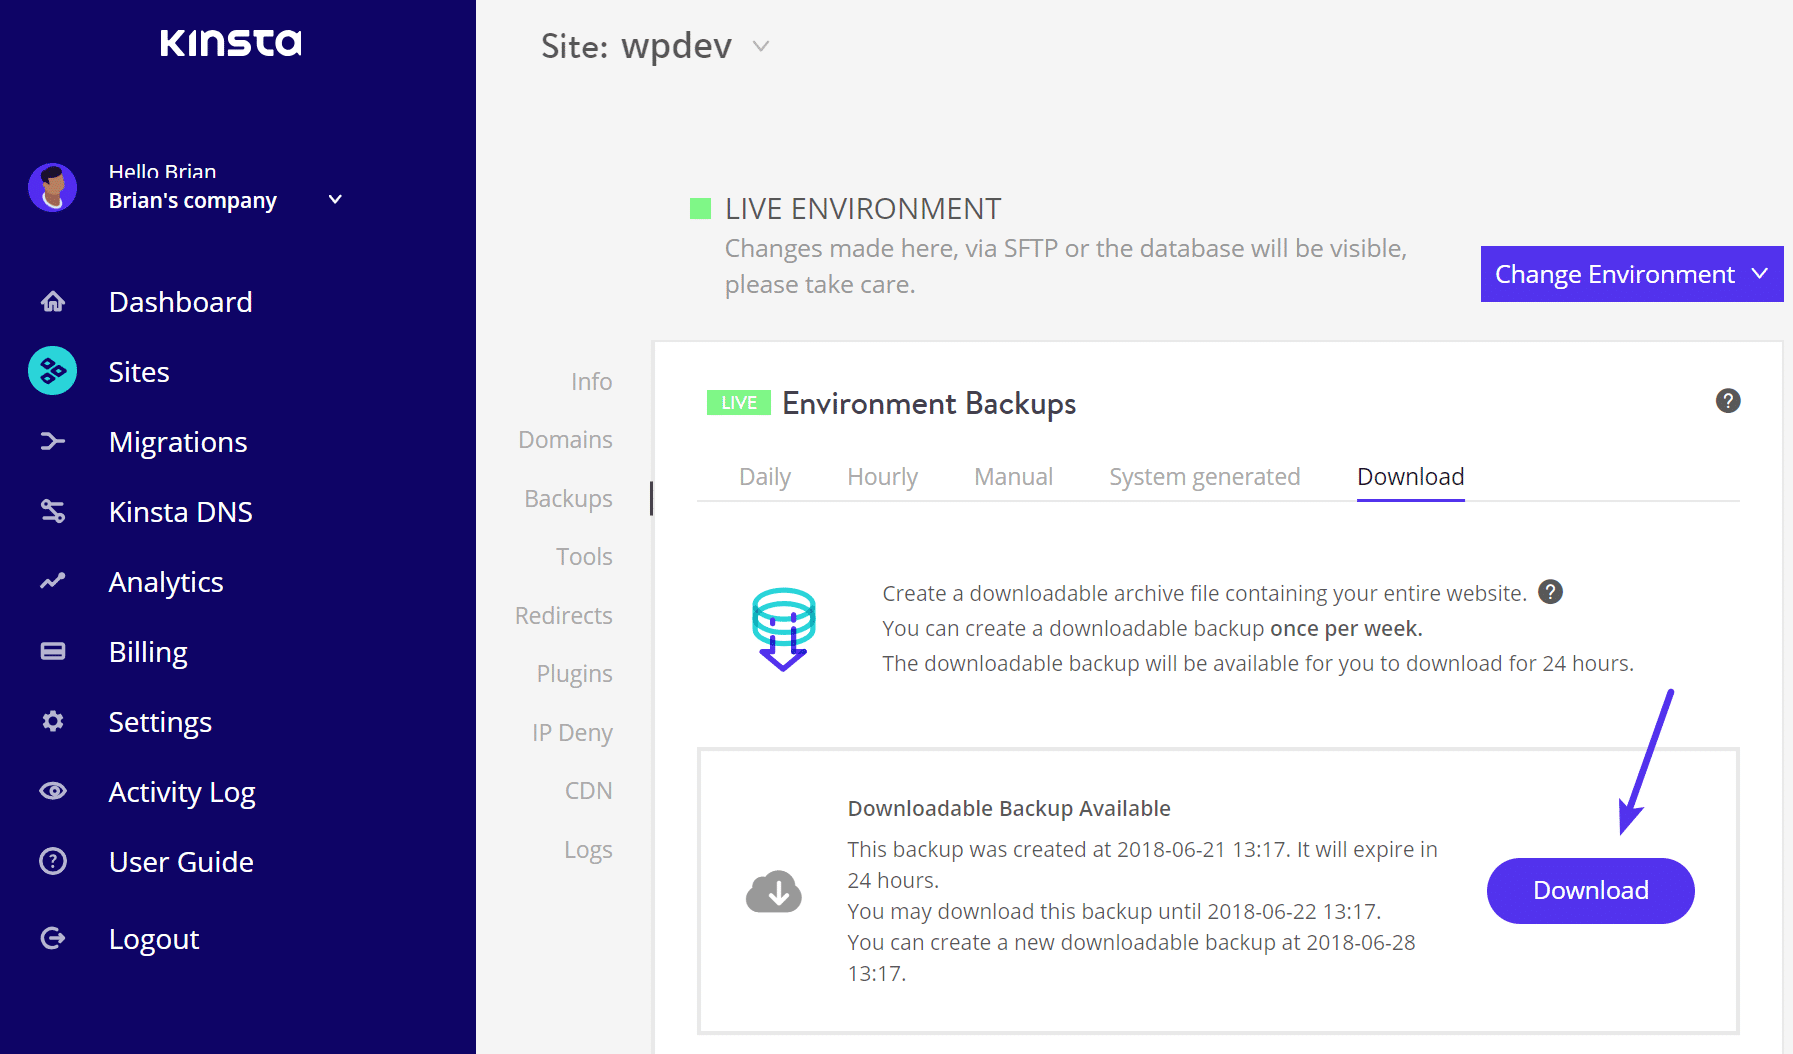 Backup Download bei Kinsta - Schritt 2